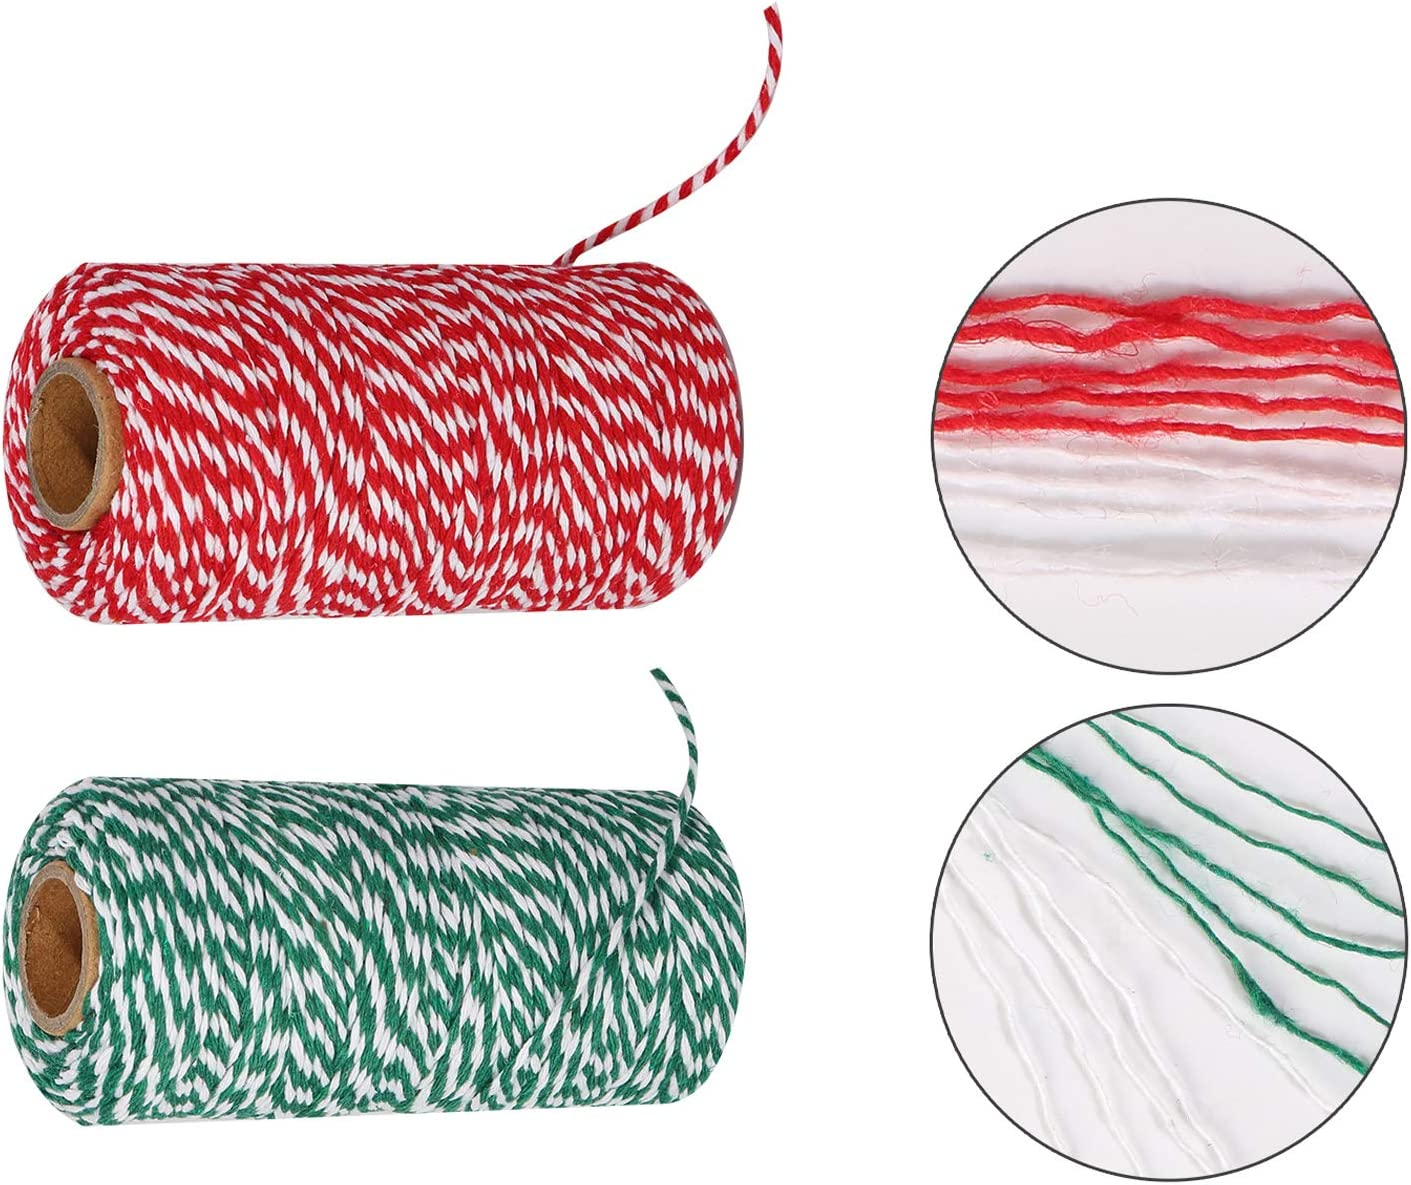 Maosifang Cotton Bakers Twine Cord String 2 mm Candy Rope Ribbon Twine for Christmas Party DecorationsGift Wrapping Arts Crafts 656 Feet,2 Rolls